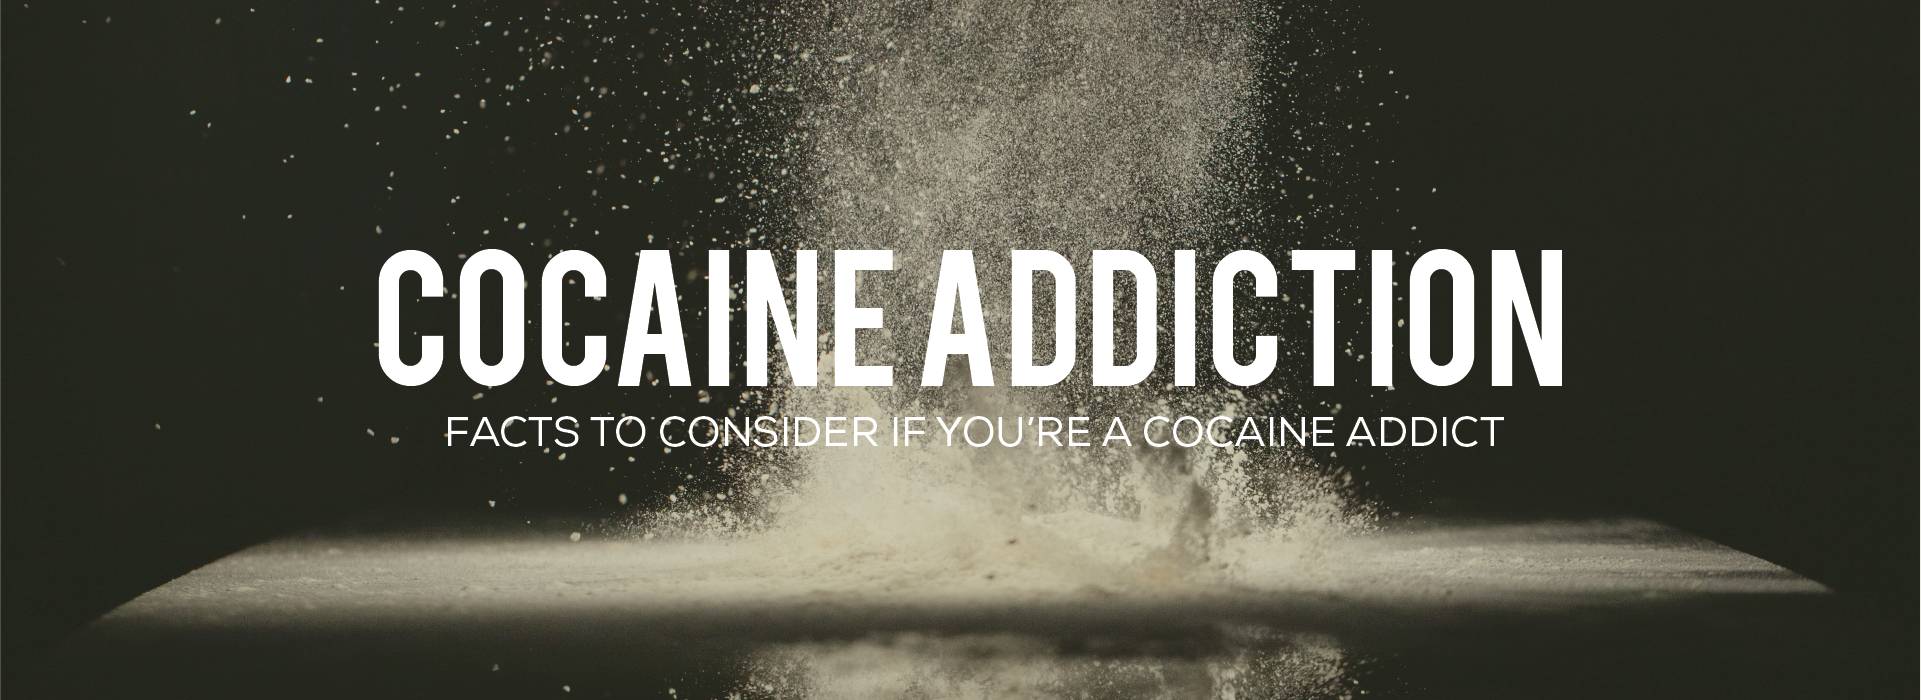 Cocaine Addiction Facts to Consider if You're a Cocaine Addict